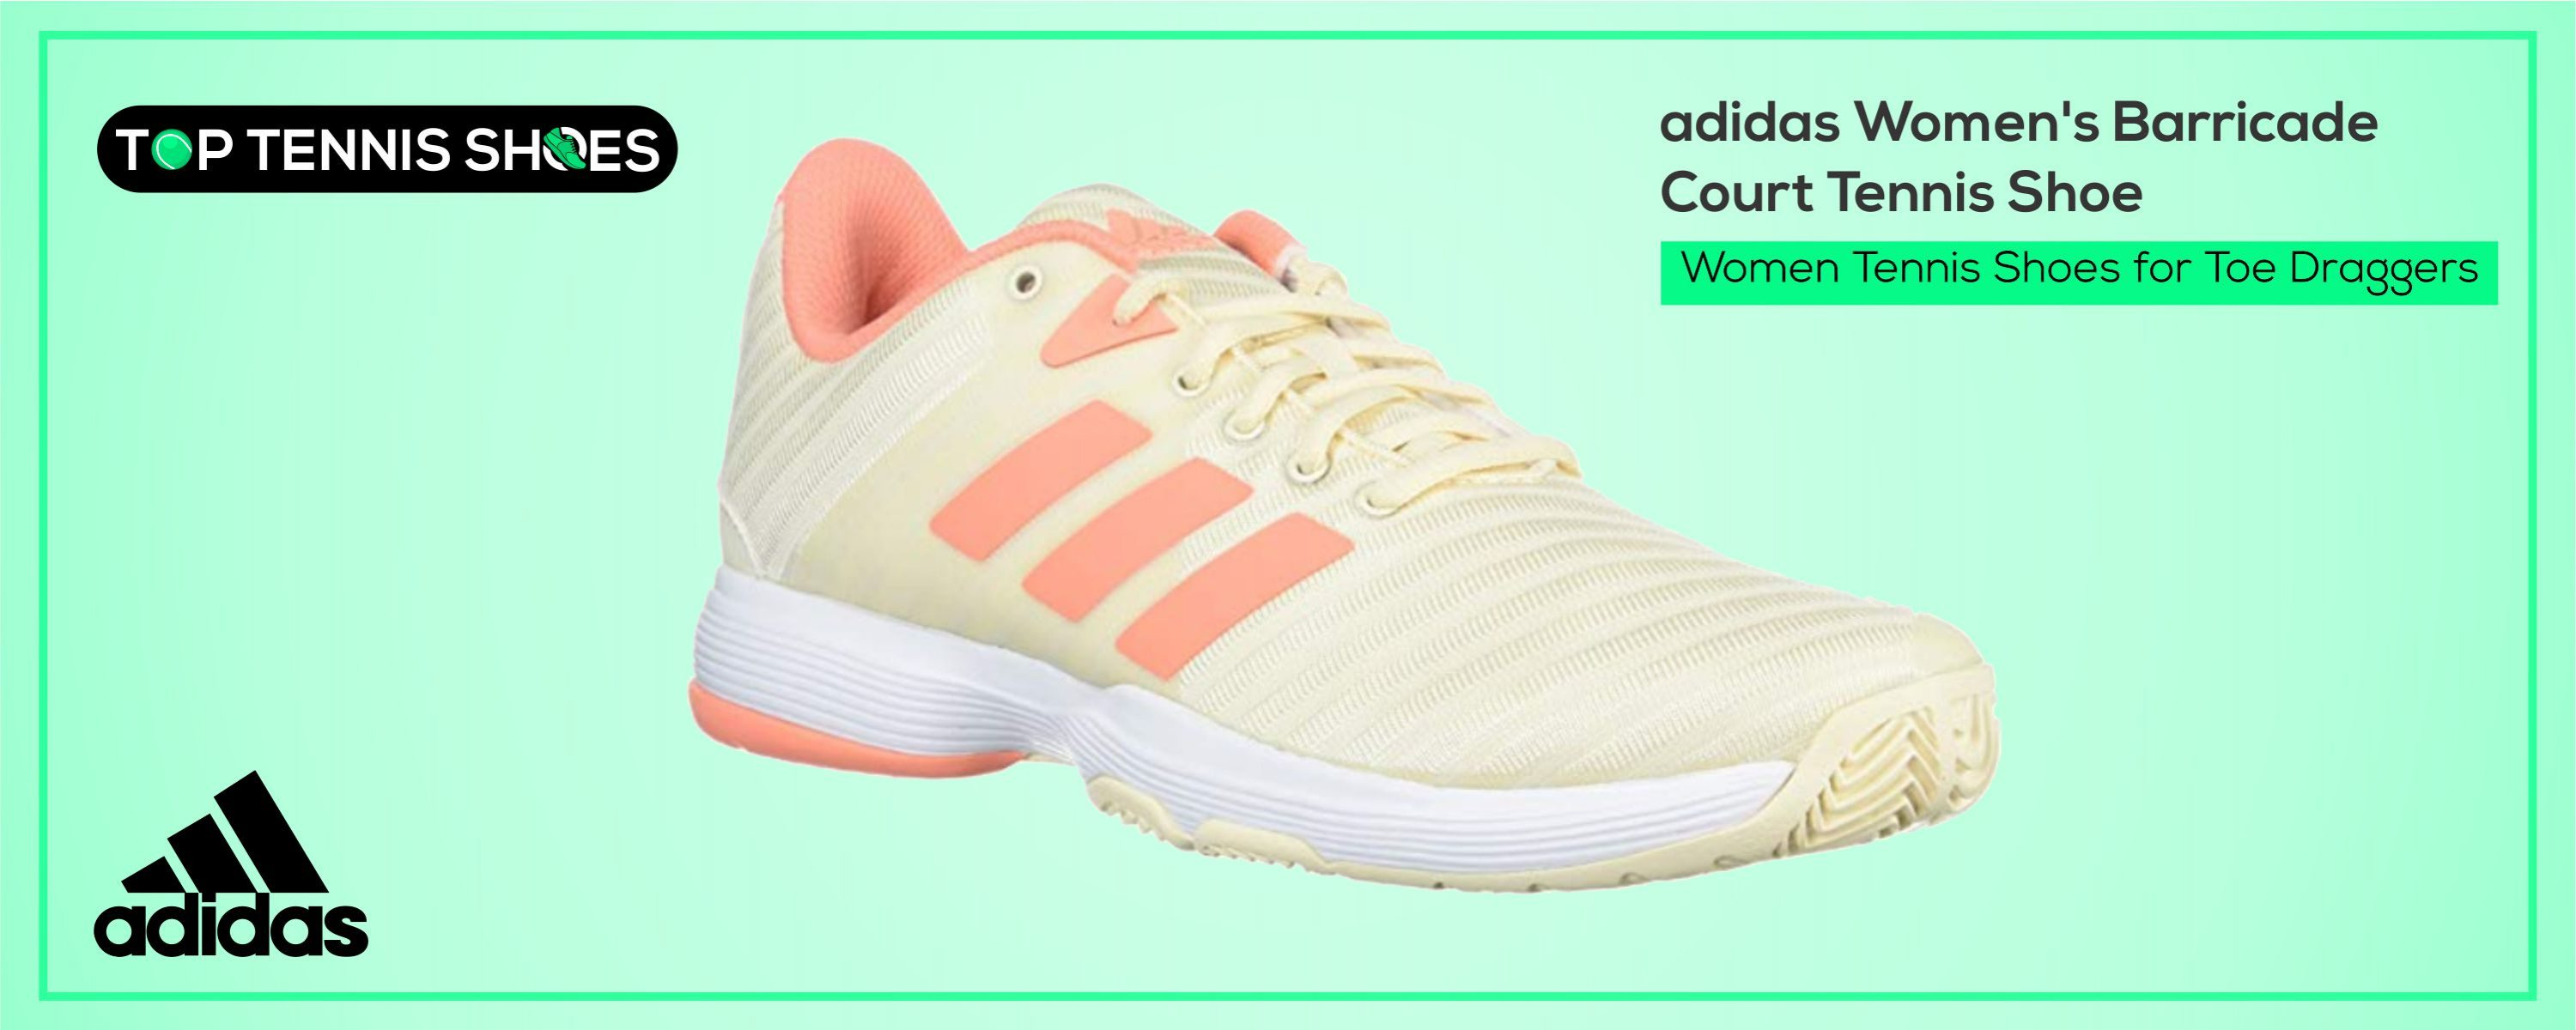 Women Tennis Shoes for Toe Draggers